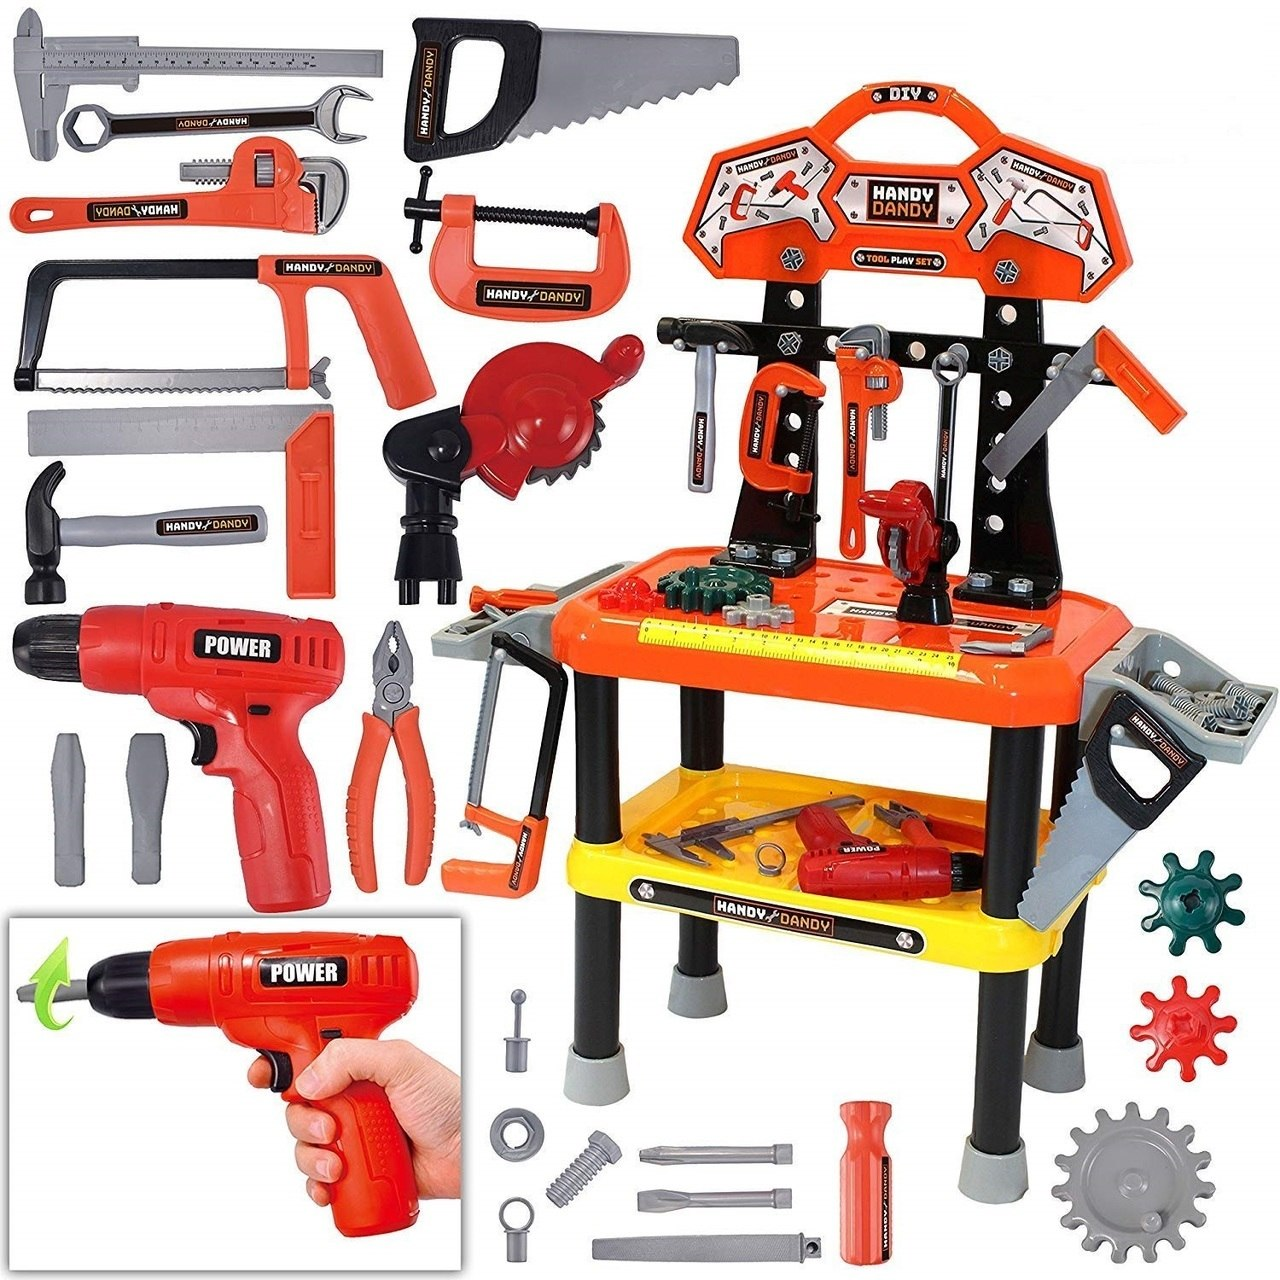 Workbench Tool Set 58-Piece Set